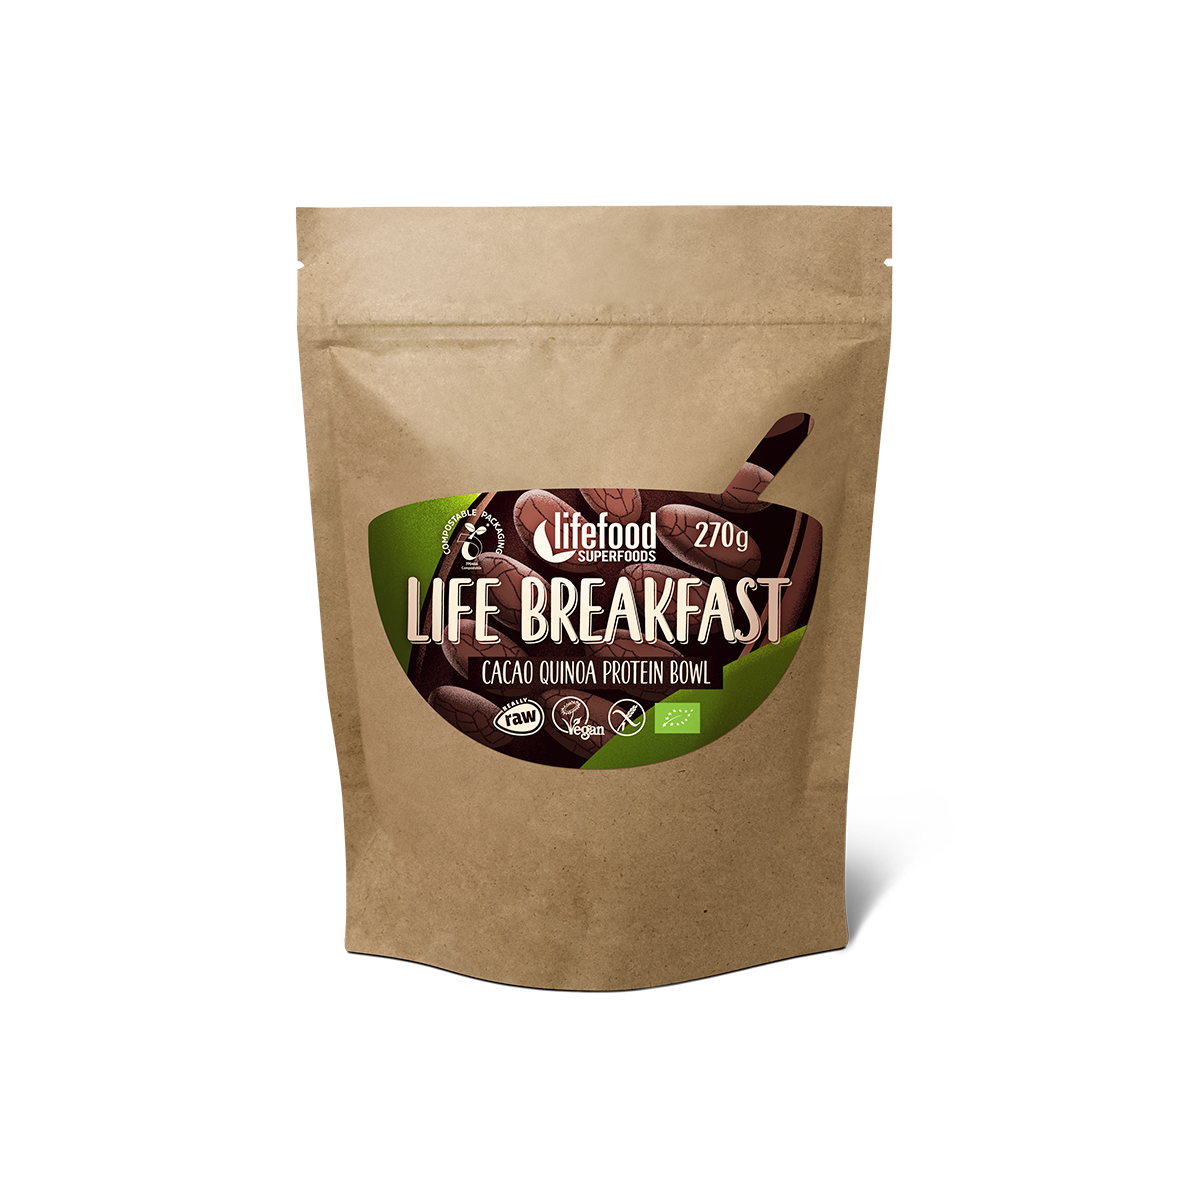 http://contao.lifefood.eu/tl_files/data/en/NEW products/LIFE BREAKFAST/Cacao Quinoa Cinnamon Bowl/Life-breakfast-bowl-cacao-quinoa-cinnamon-protein-raw-organic.png